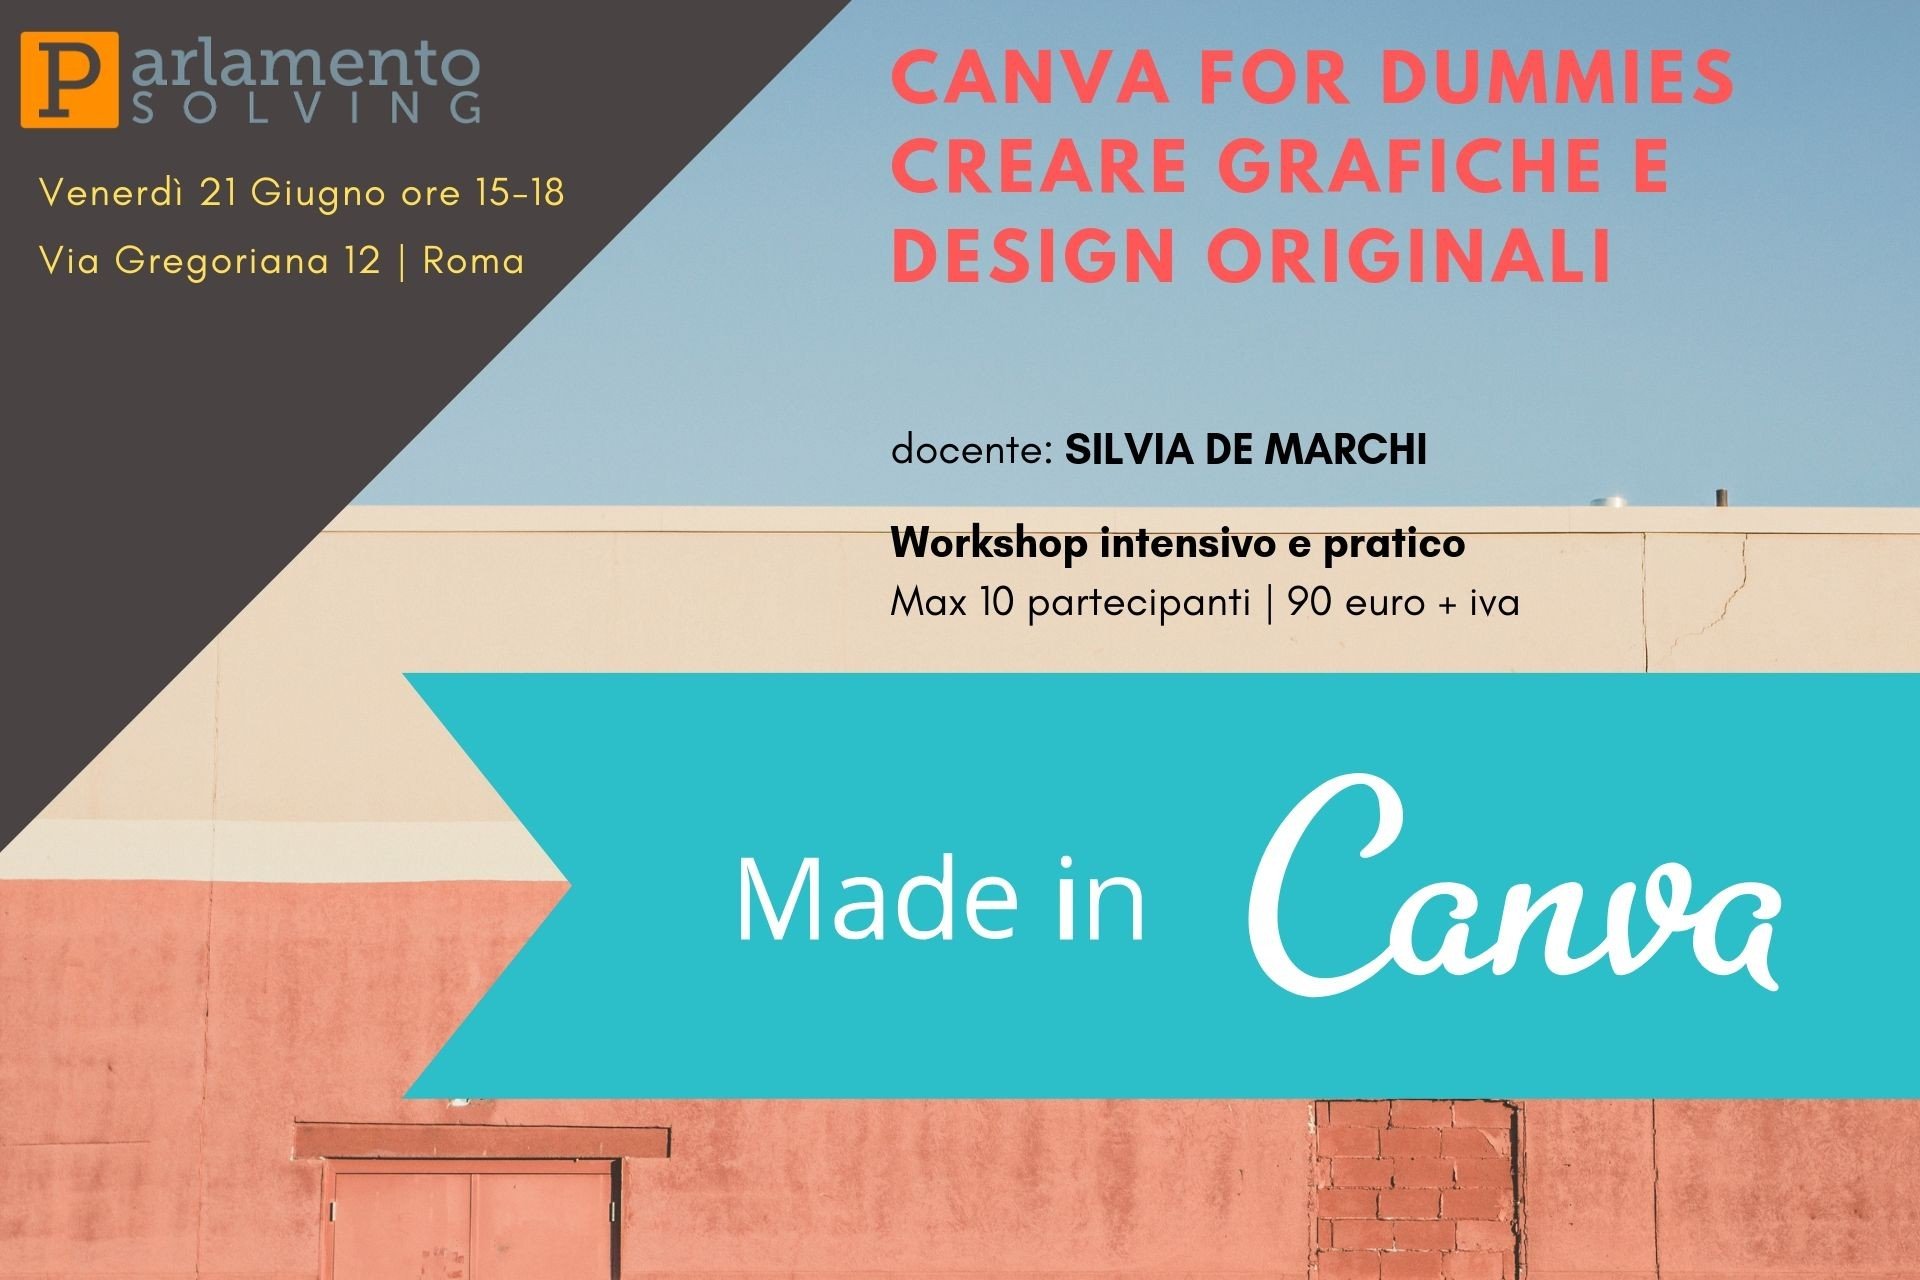 Canva for dummies